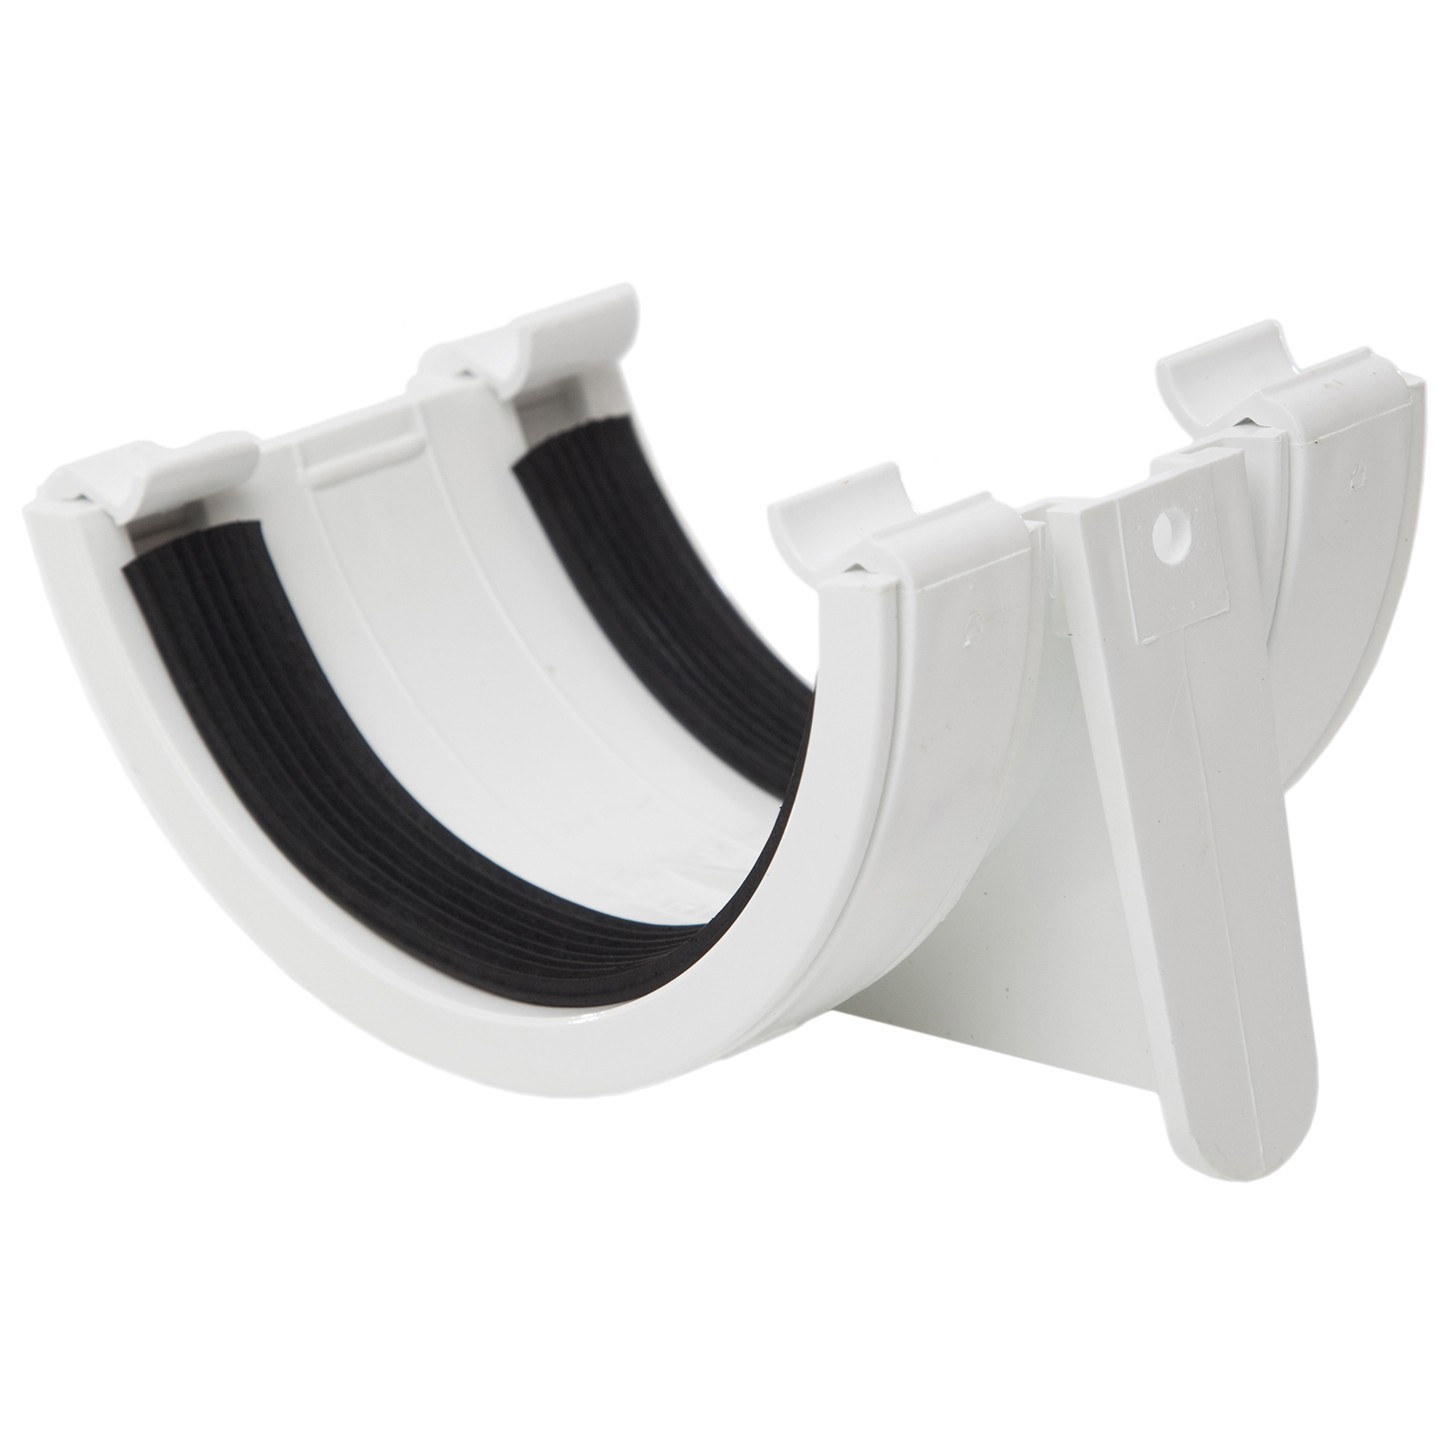 Polypipe 112mm Half Round Gutter Union Bracket - White